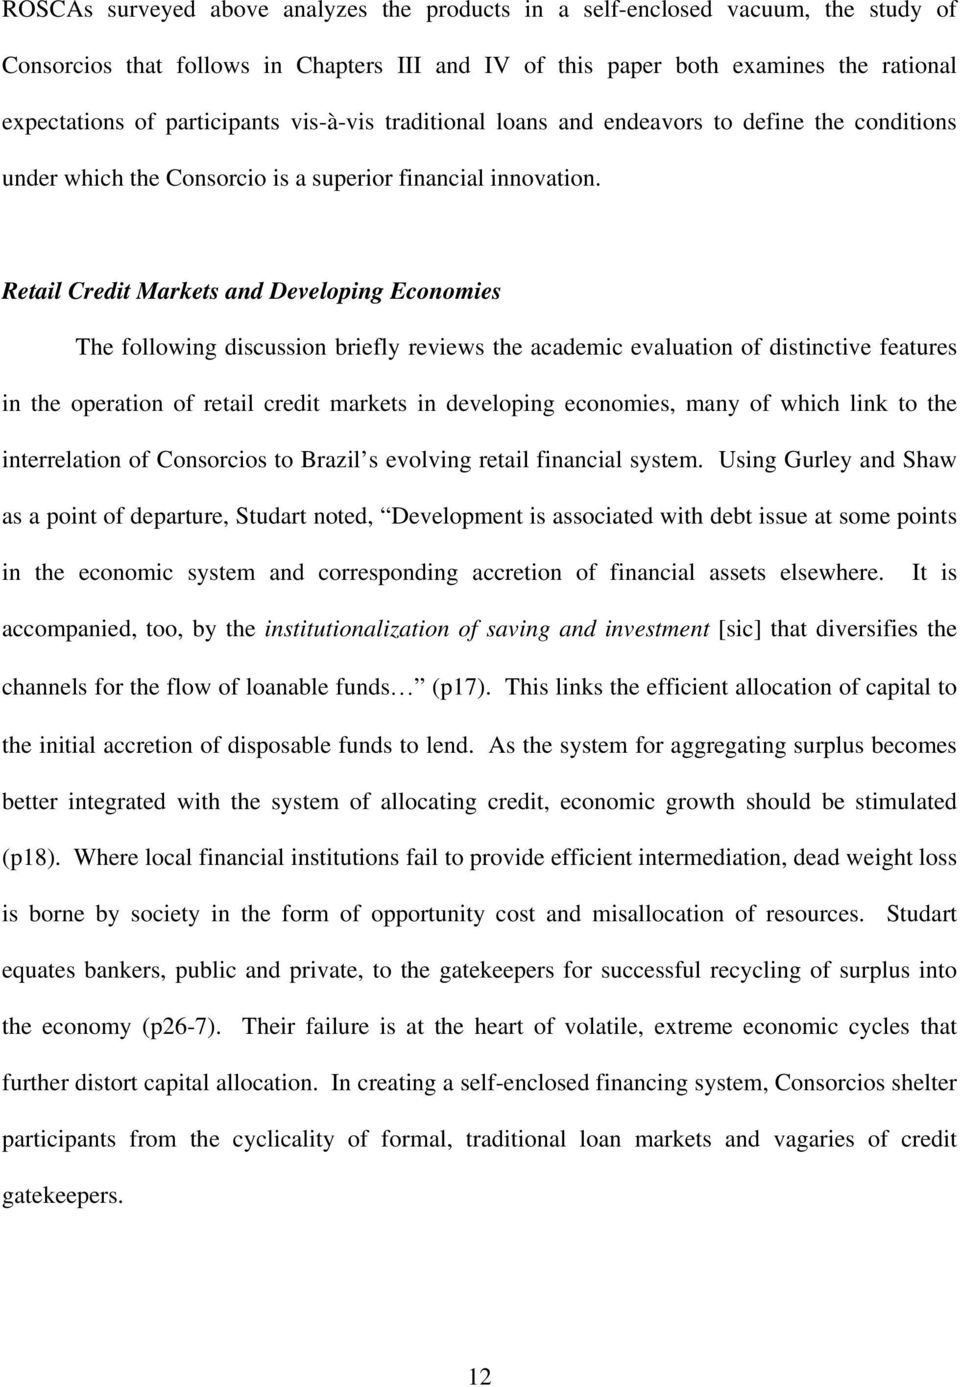 Retail Credit Markets and Developing Economies The following discussion briefly reviews the academic evaluation of distinctive features in the operation of retail credit markets in developing